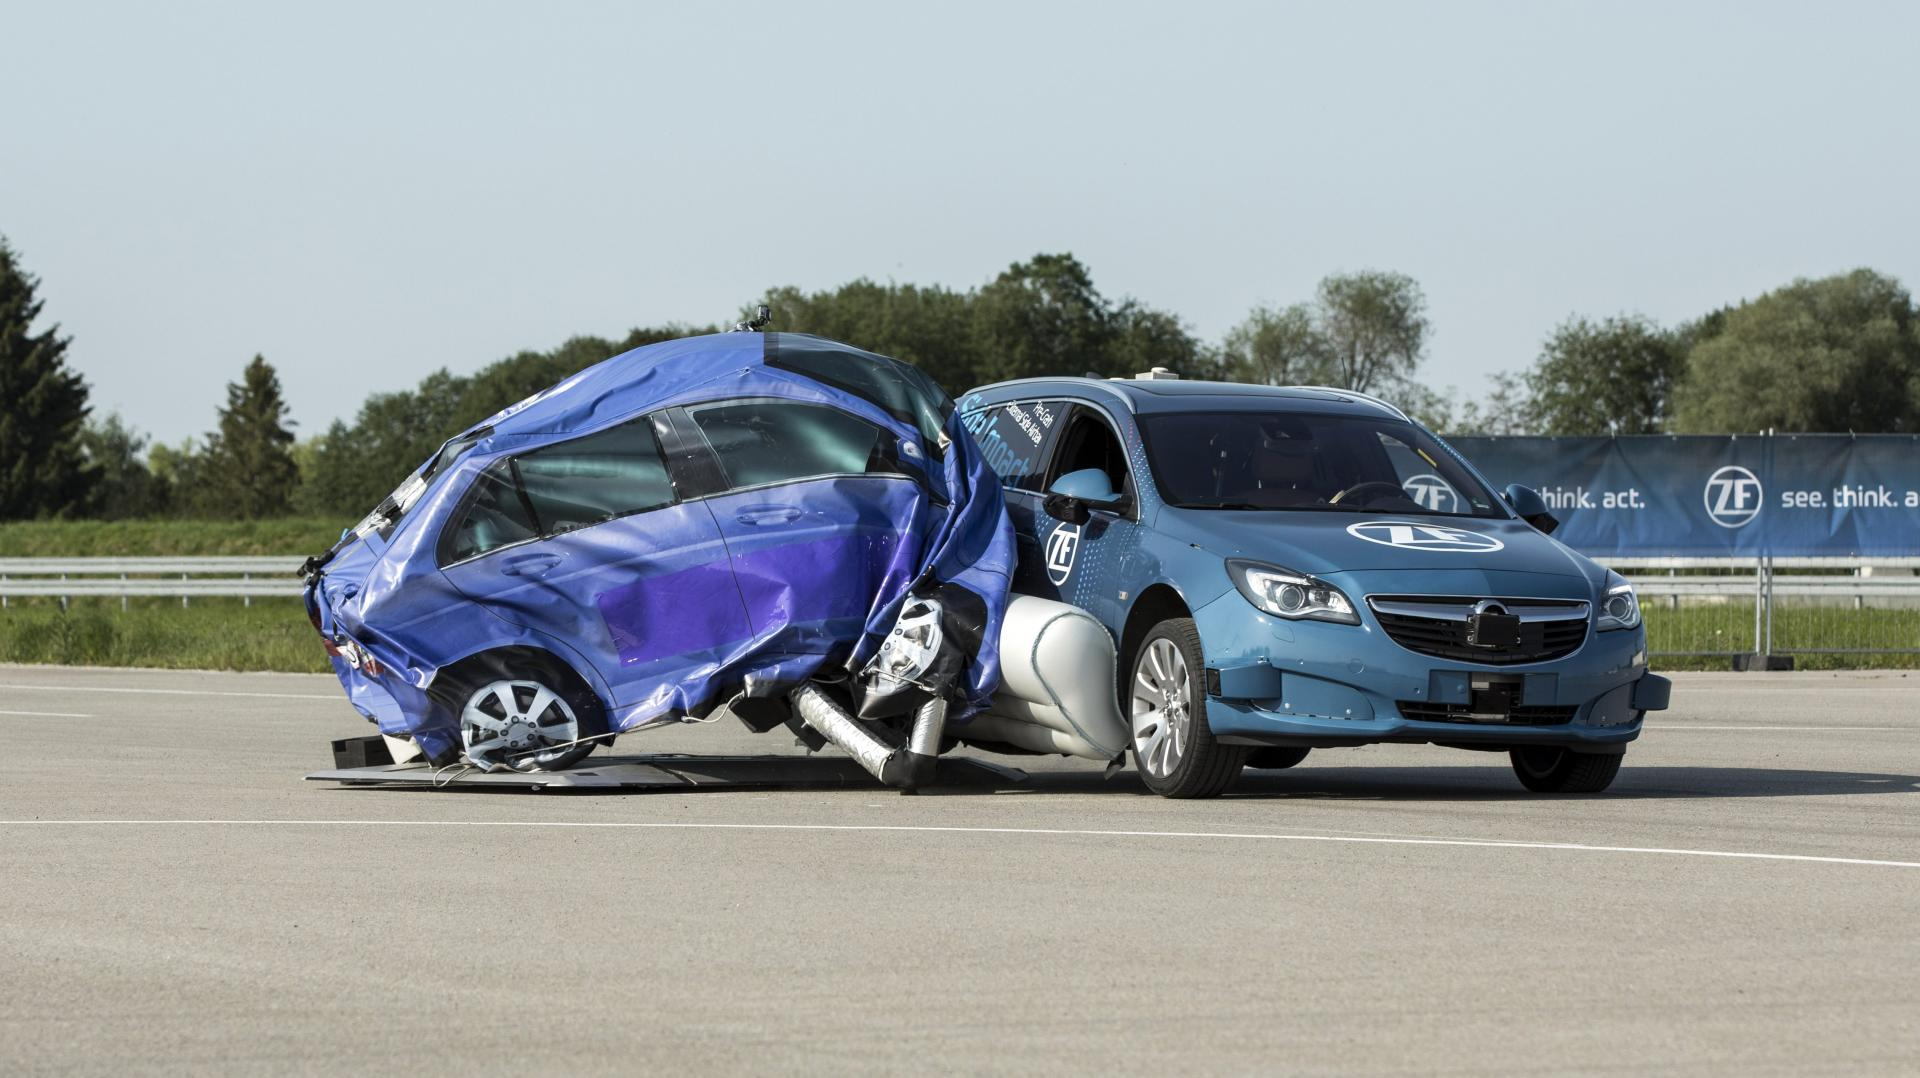 ZF externe airbag